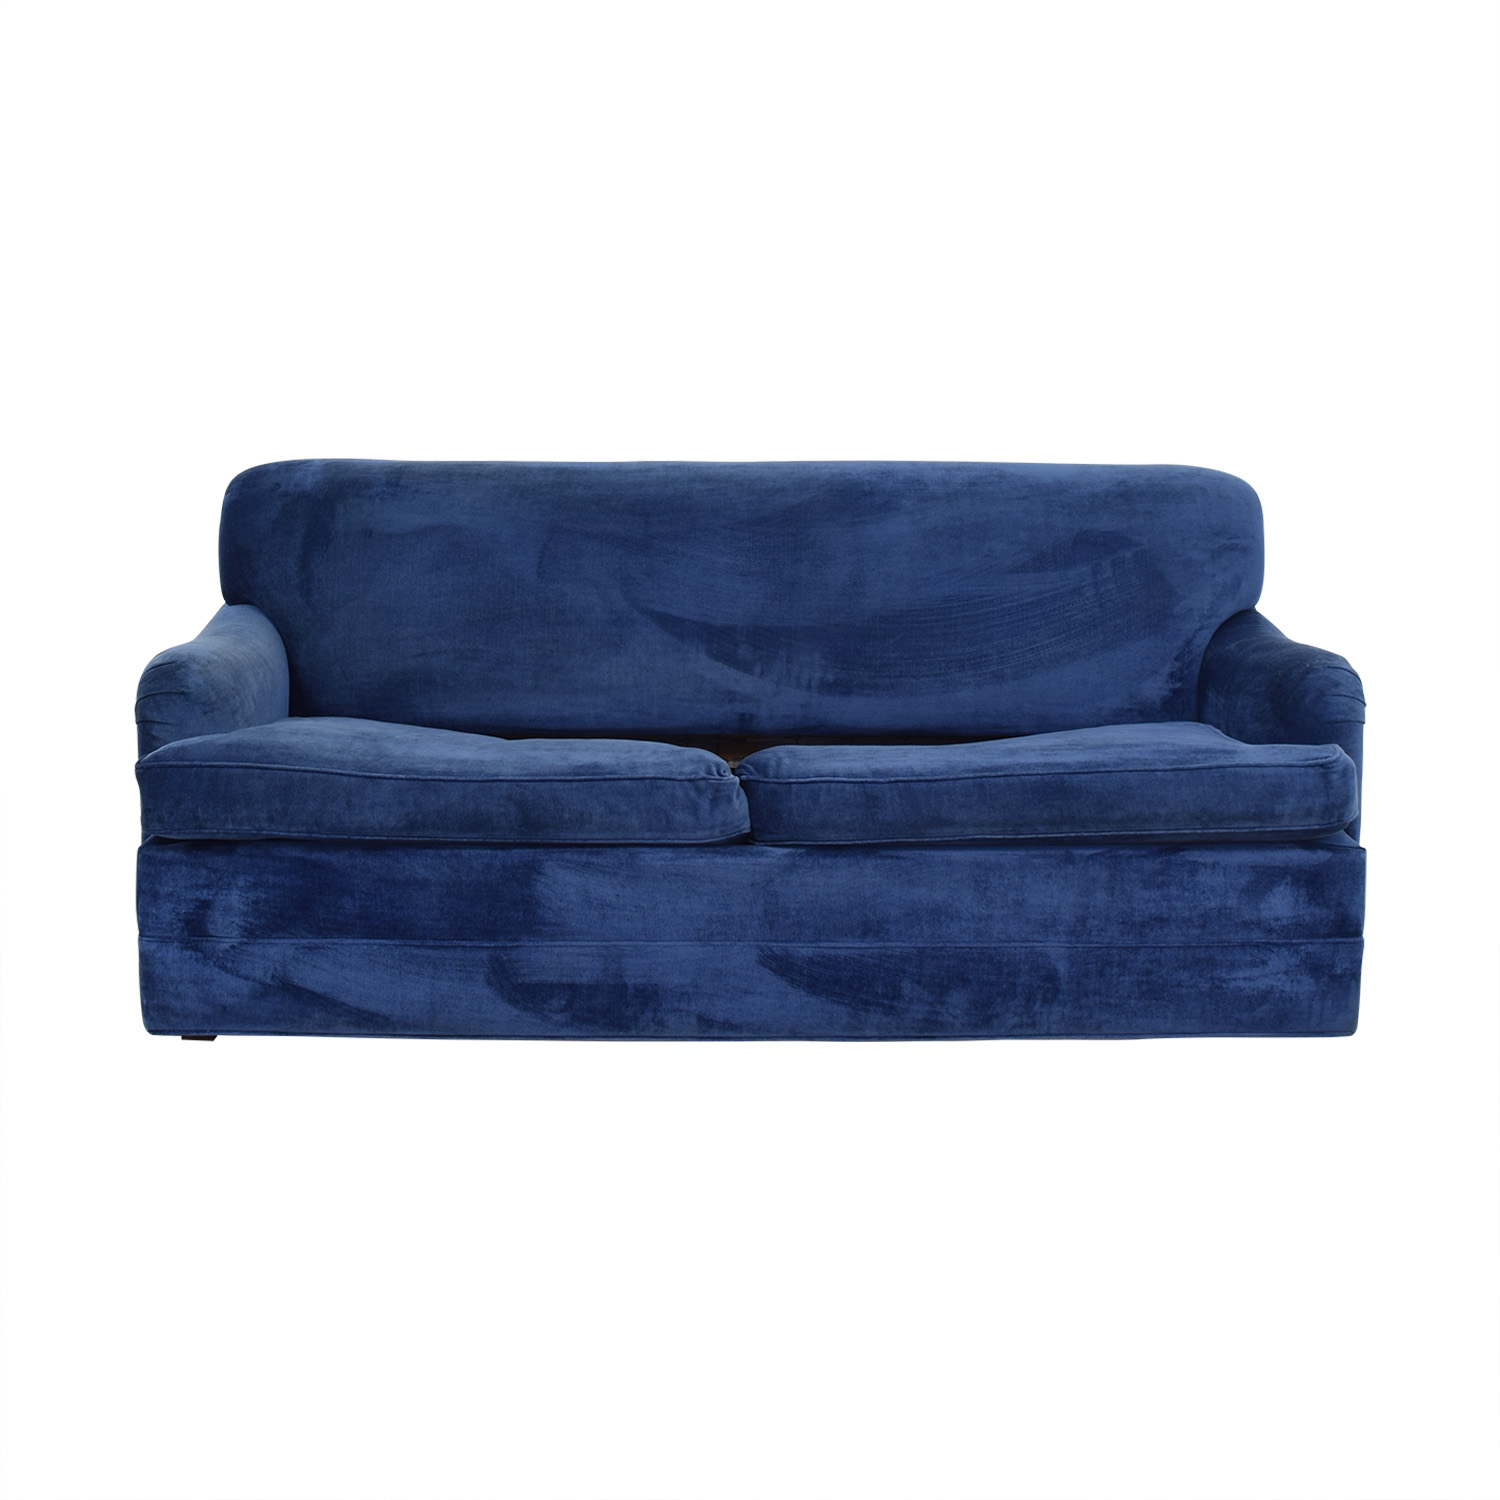 Carlyle Carlyle Full Sofa Bed nj